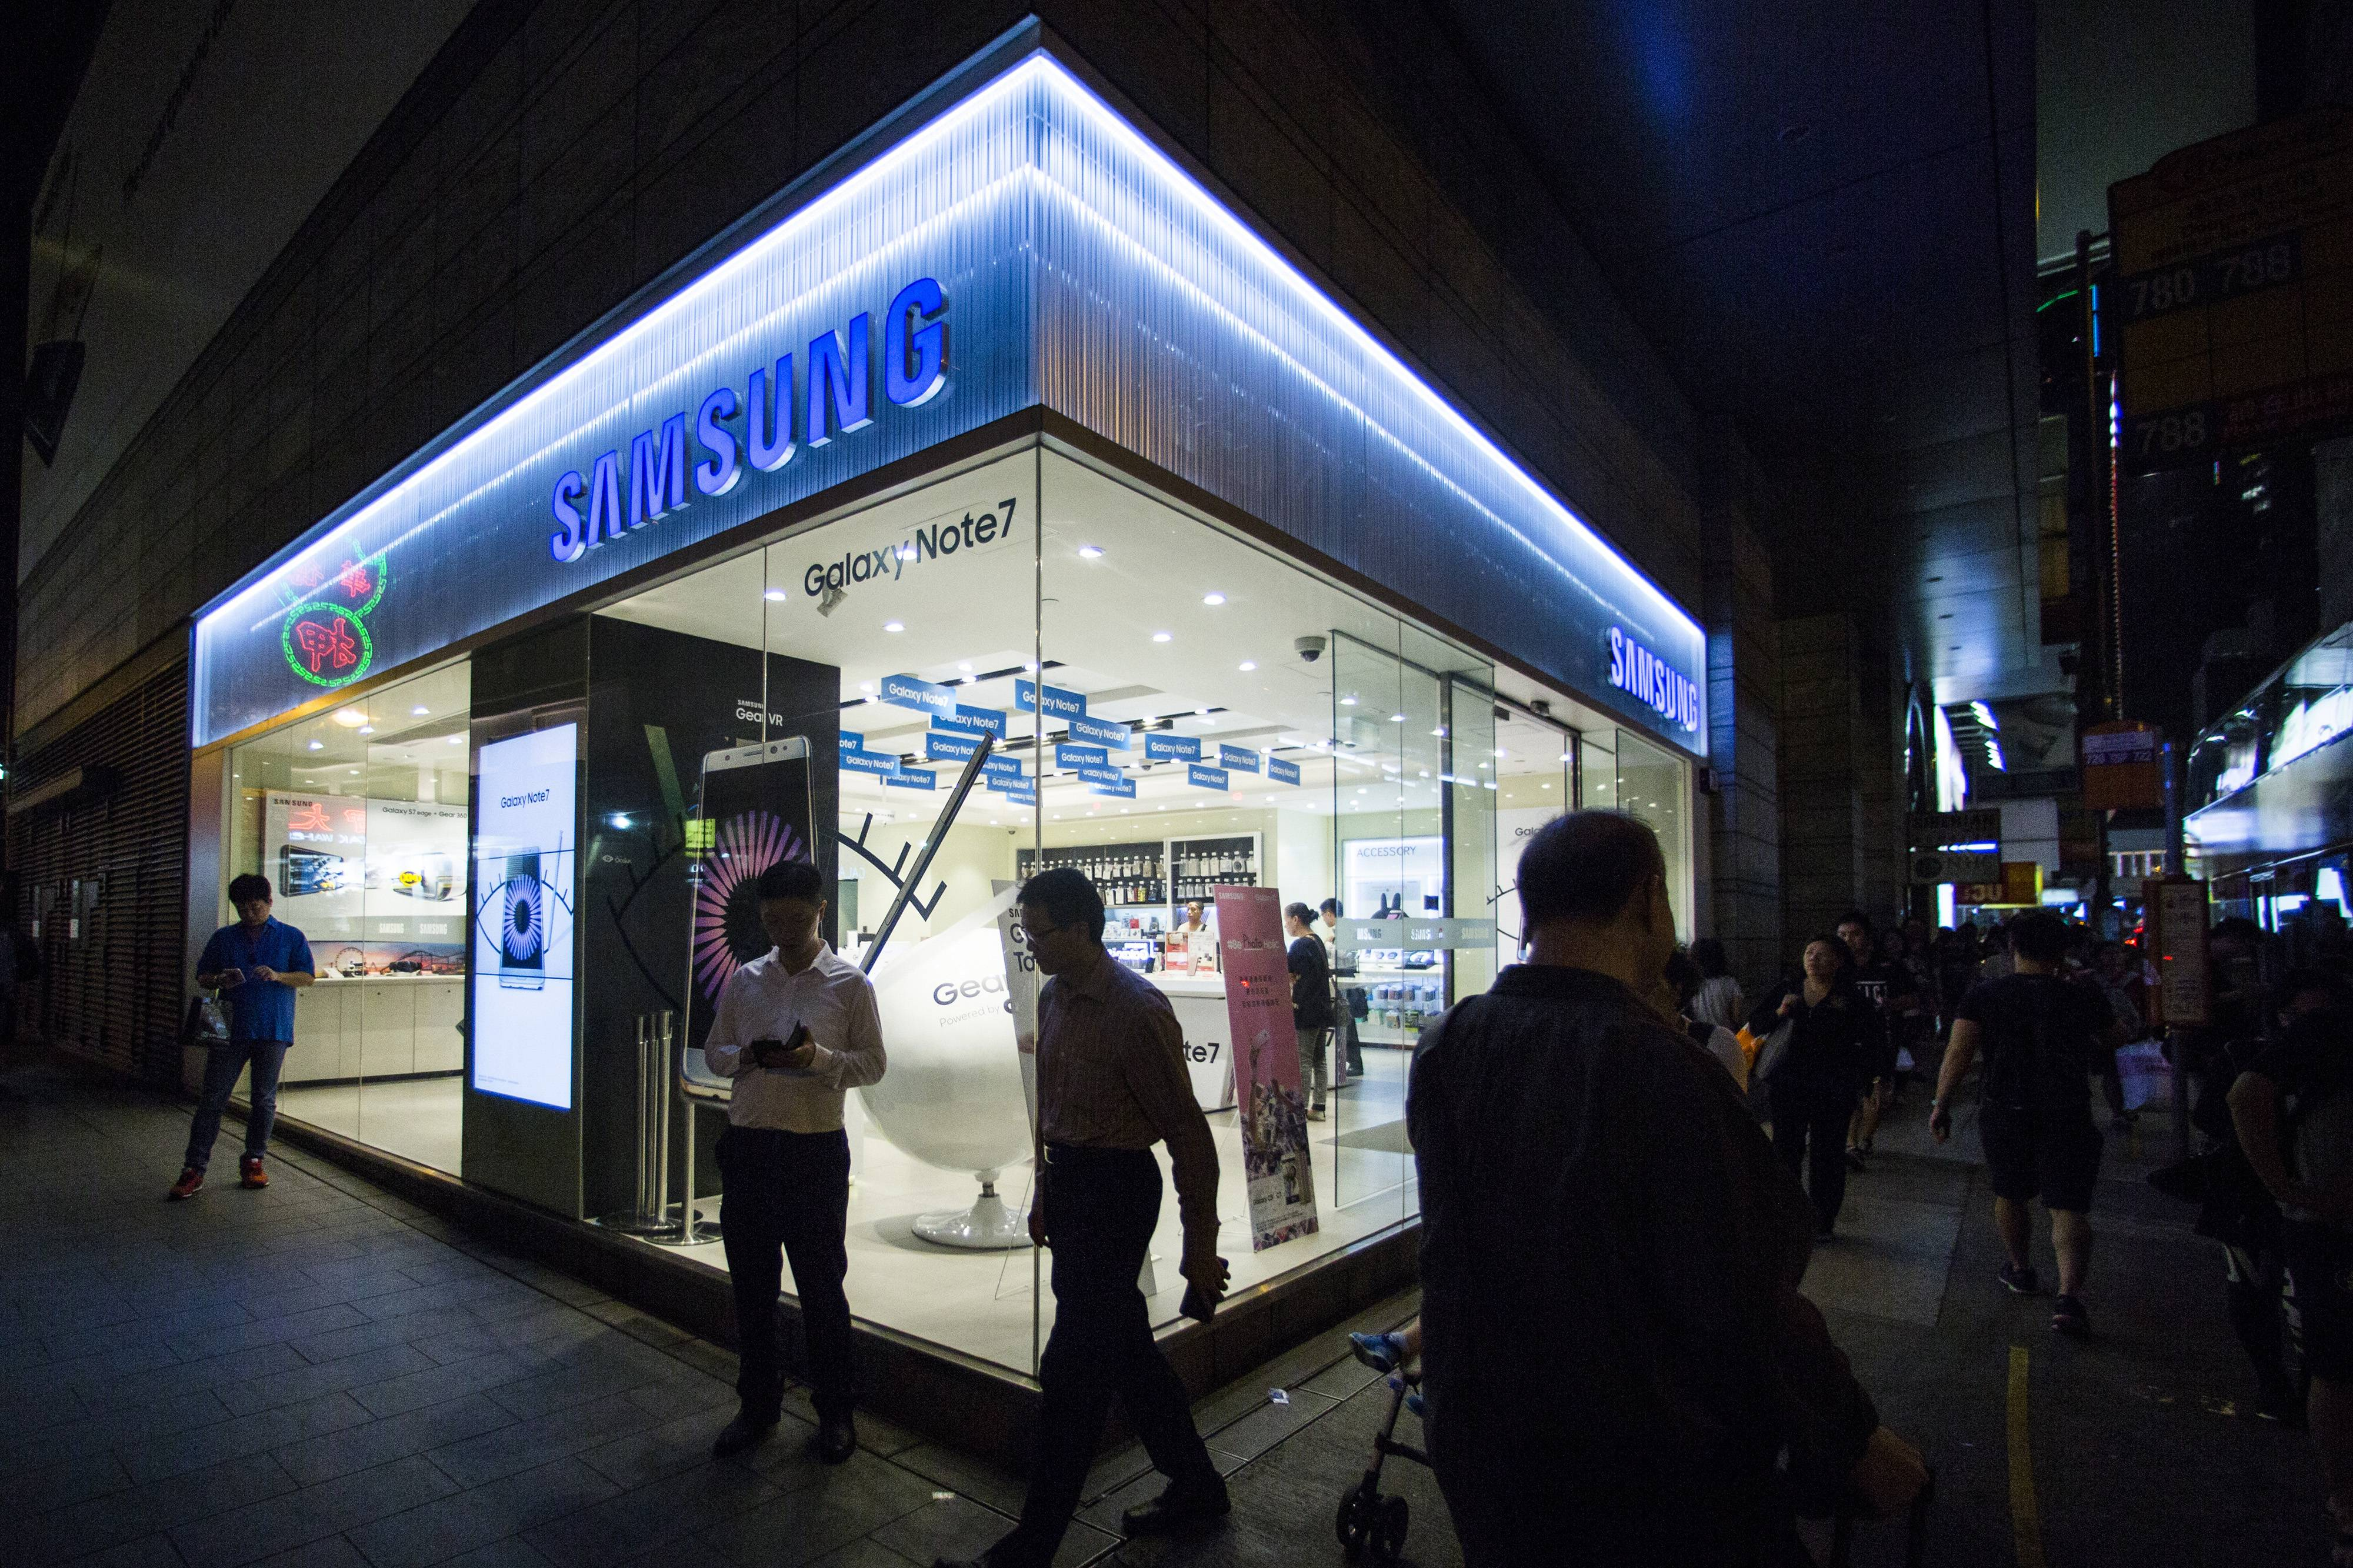 Samsung's brand has taken a hit after the costly Note 7 recall, dropping from seventh to 49th in one year on the Harris Poll's reputation list of the world's 100 most visible companies.